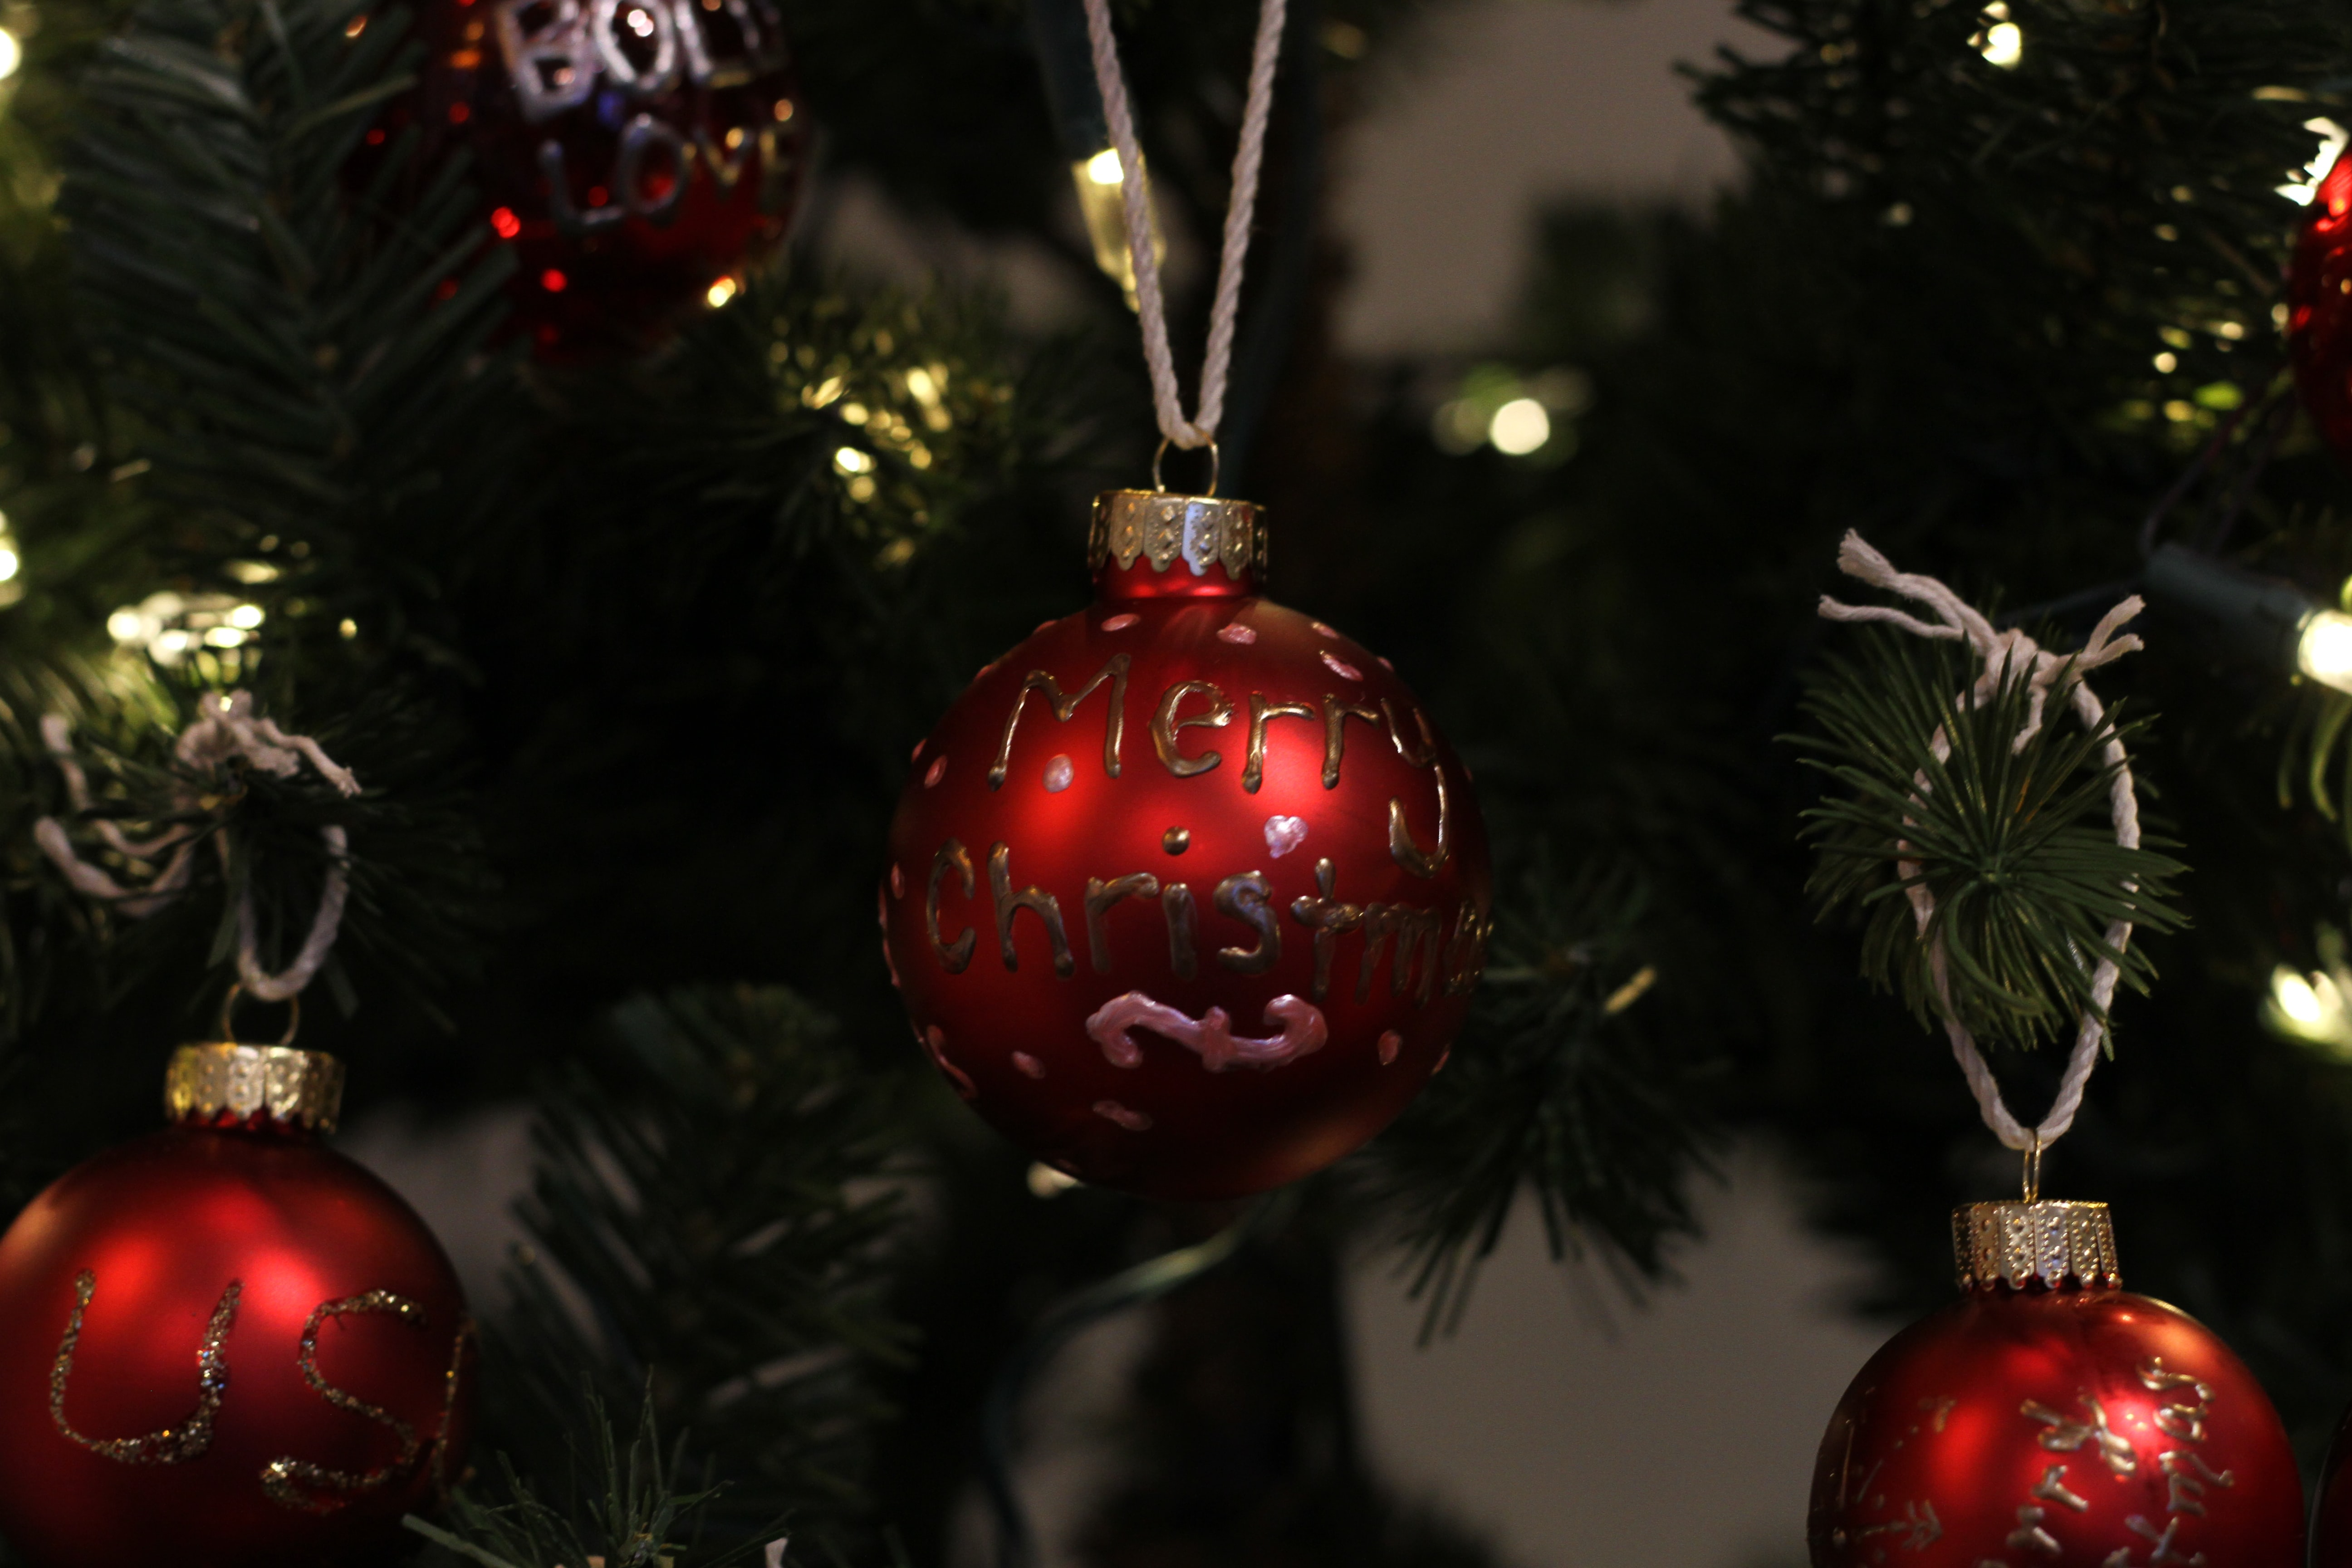 Red ornaments hanging from a Christmas tree.